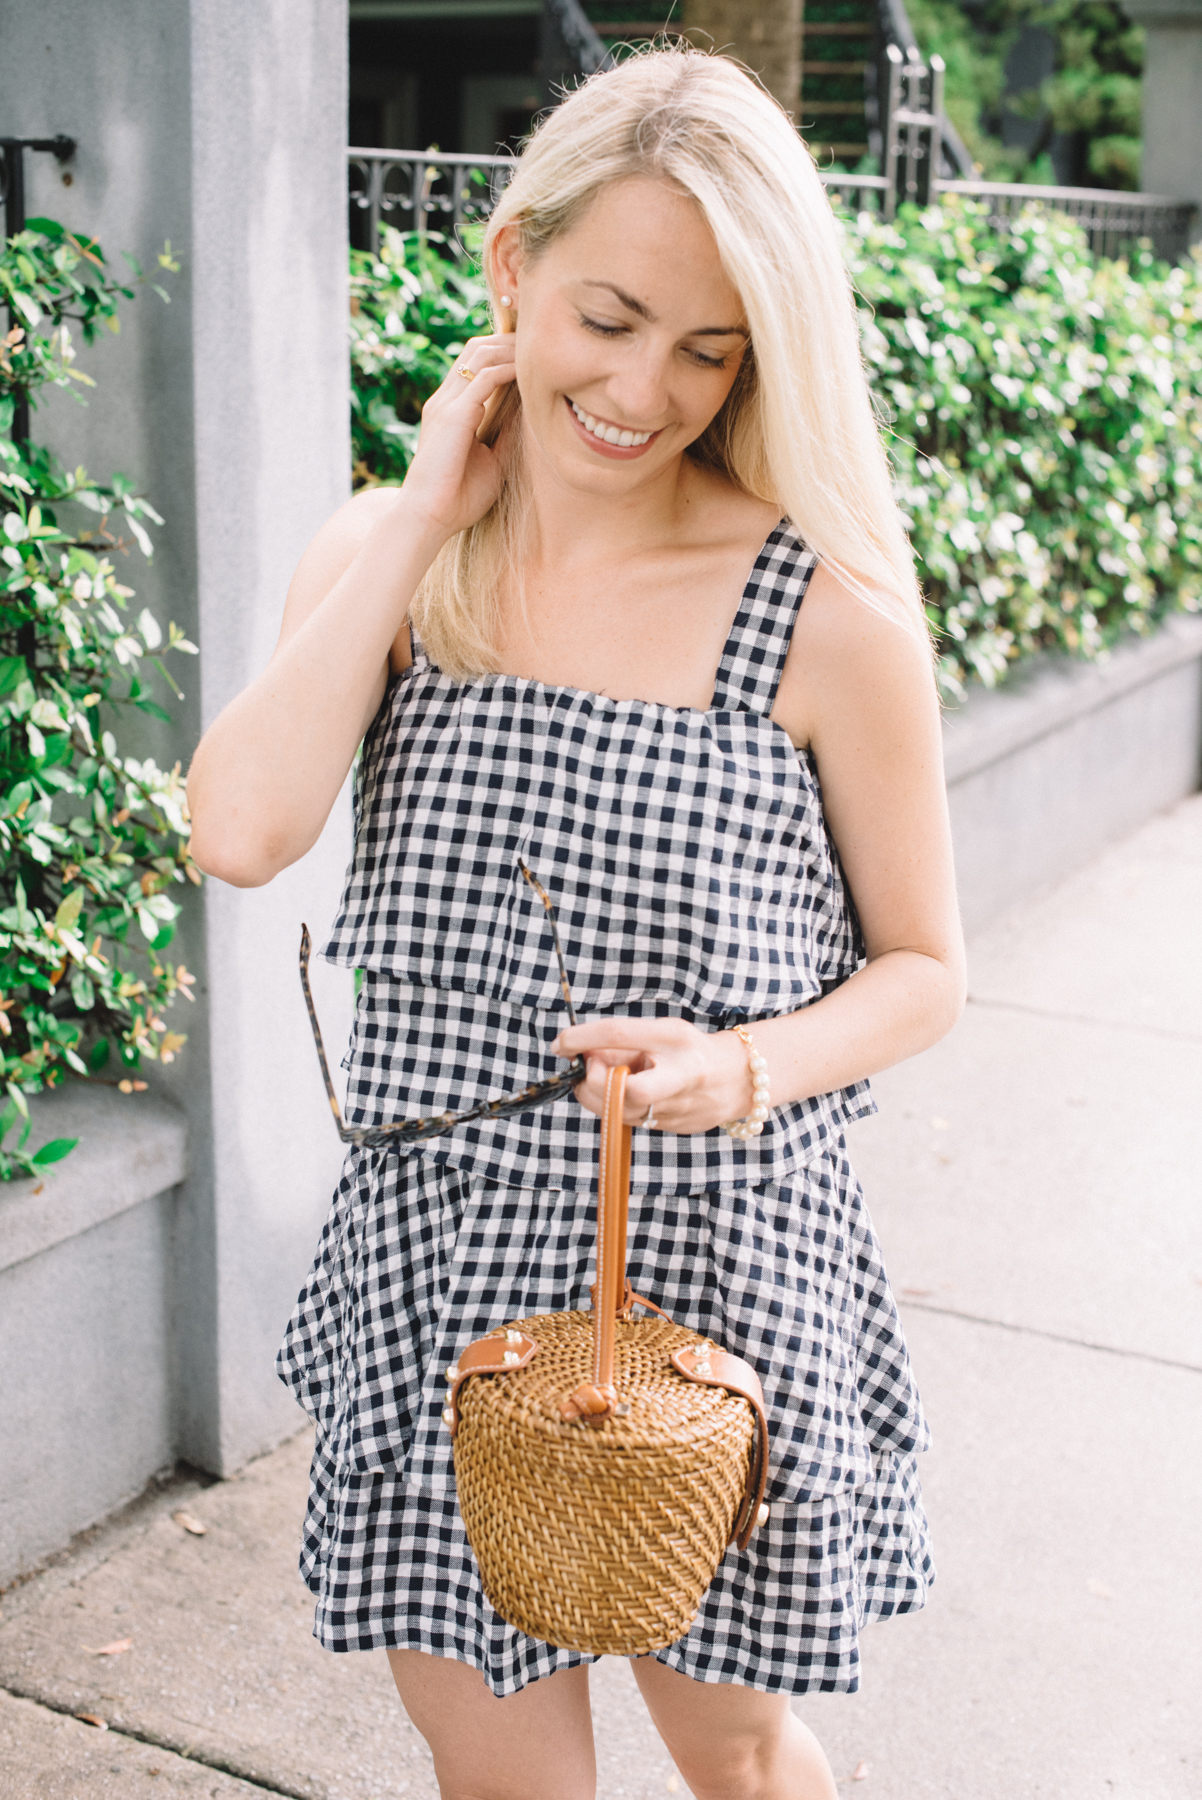 How To Wear A Gingham Dress- Neutral Gingham Prints   Rhyme & Reason